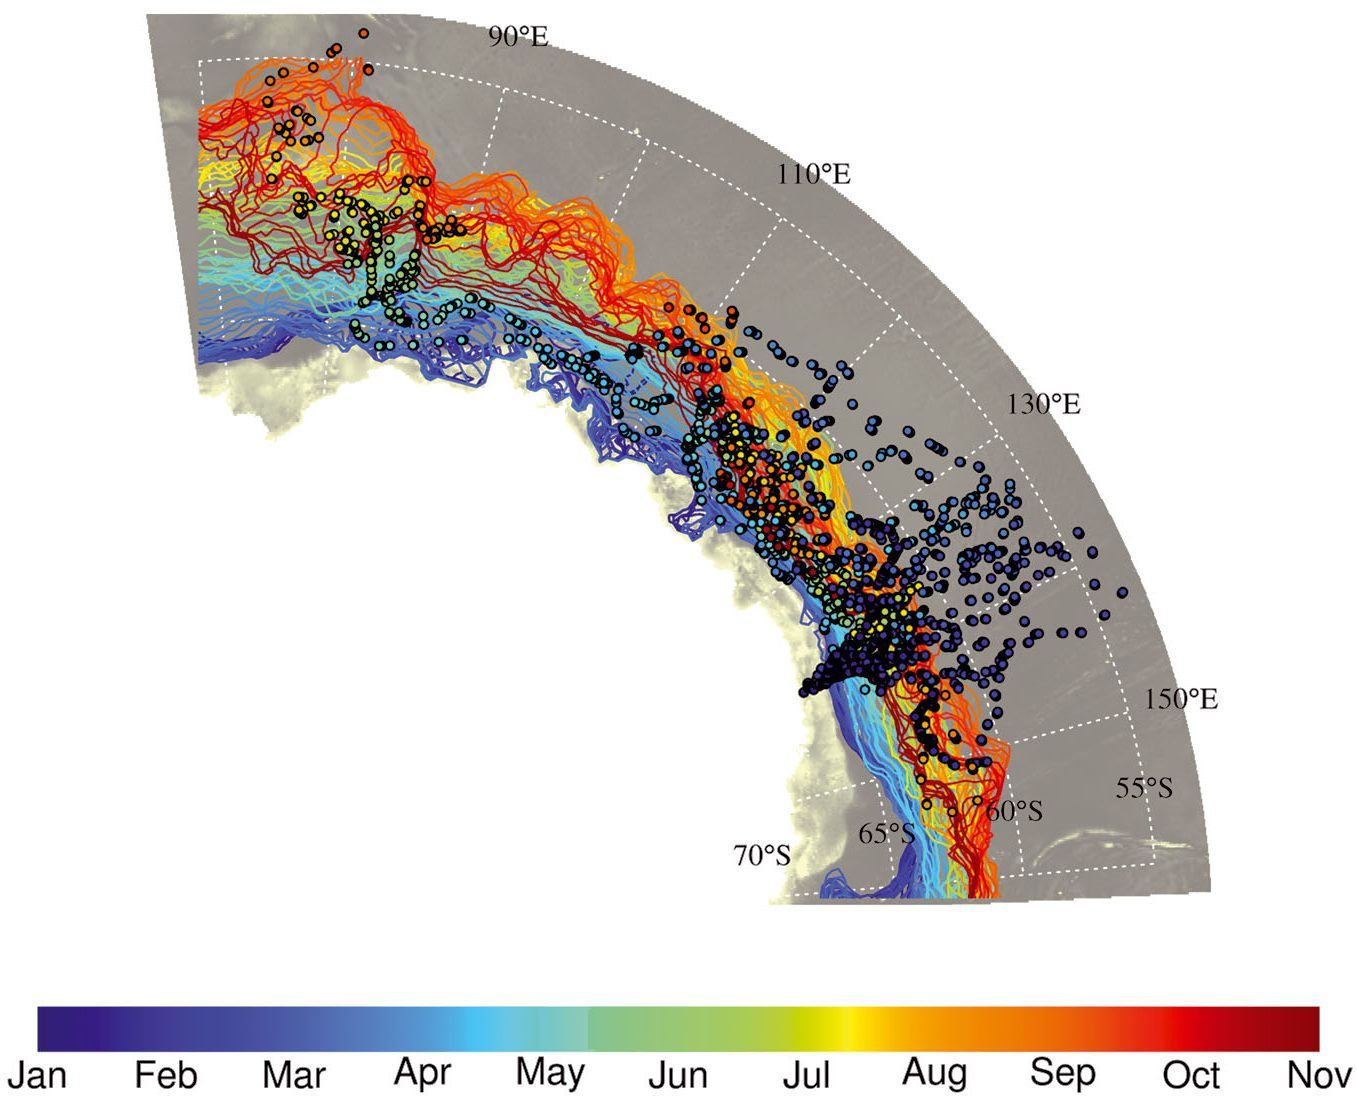 Tracks of the 15 juvenile emperor penguins (dots) and sea ice edge (lines) at different times of the year 2014; the ice edge lines and penguin location dots are colored with respect to time following the same color scale. (Credit CEBC/CNRS, from [Labrousse et al, 2019])